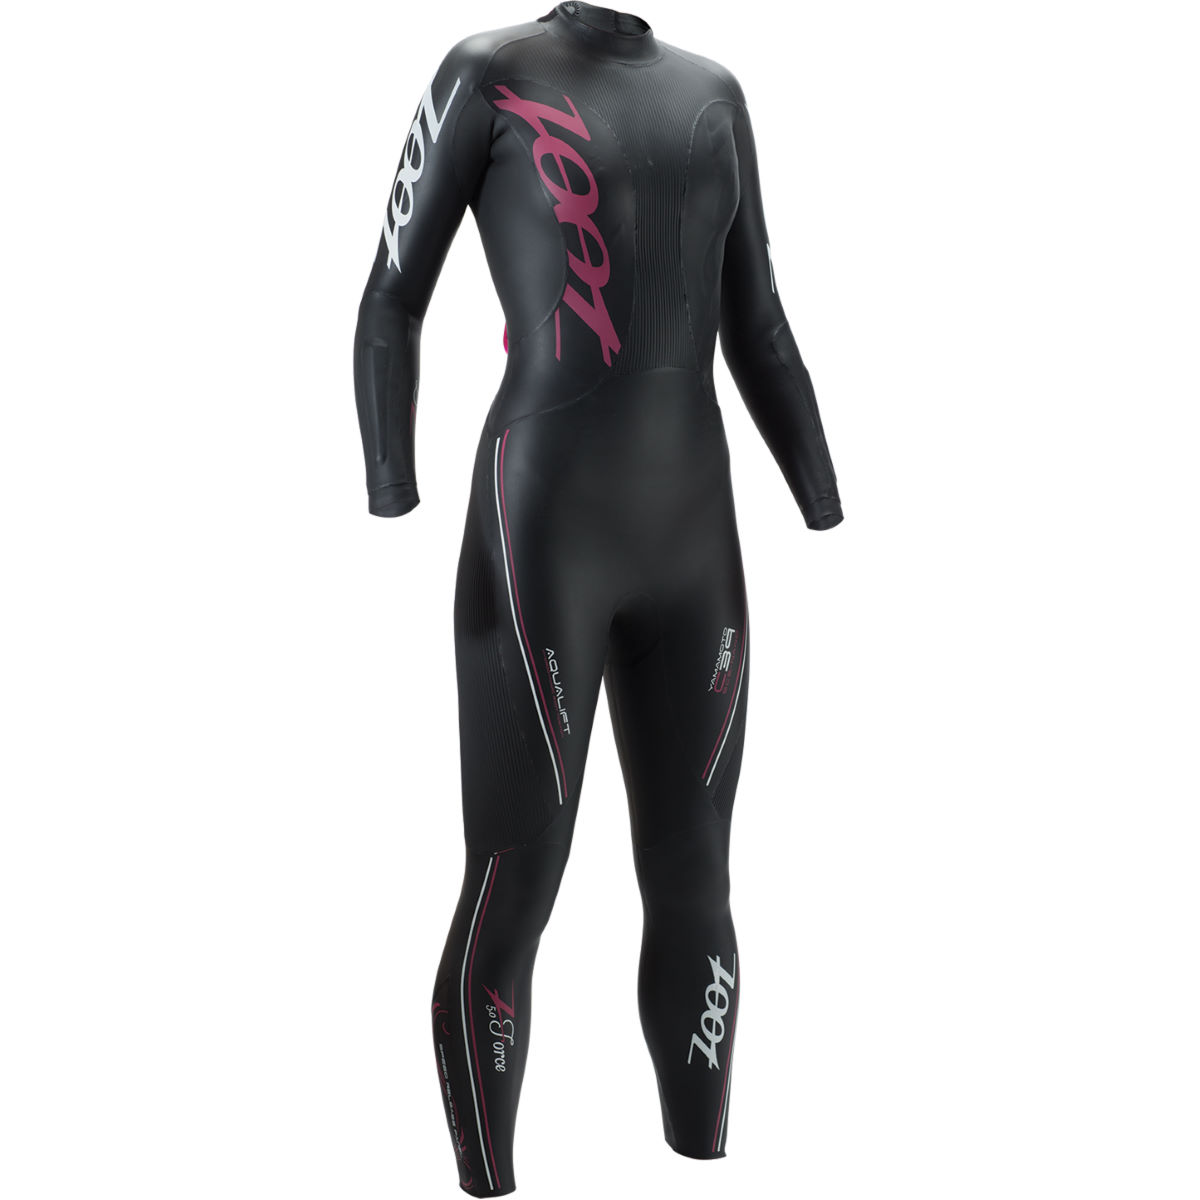 Combinaison Femme Zoot Z Force 5.0 - Extra Small Black/Beet